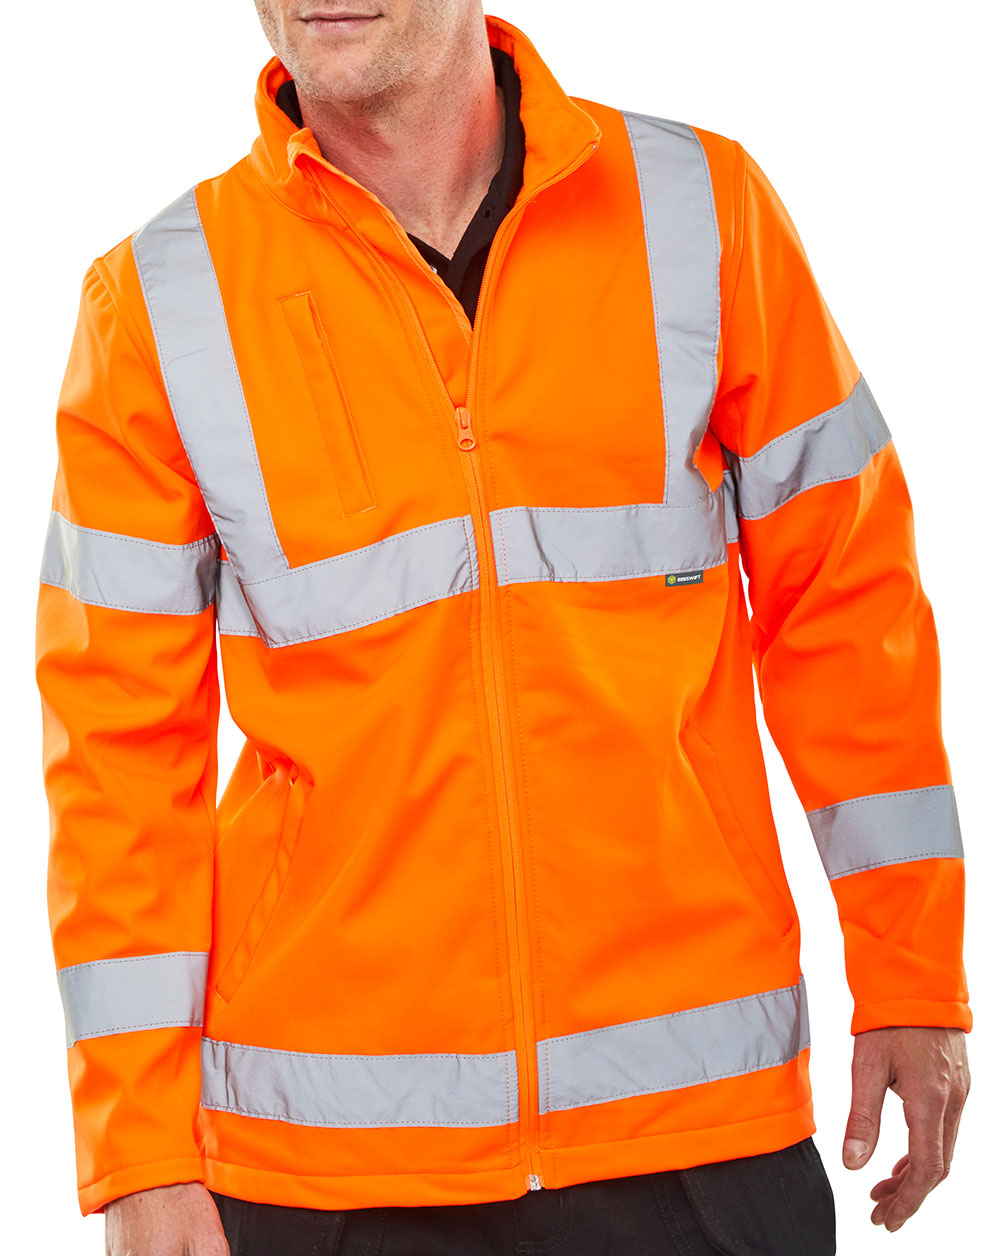 SOFT SHELL JKT HV ORANGE EN20471 GORT3279 - SS20471OR